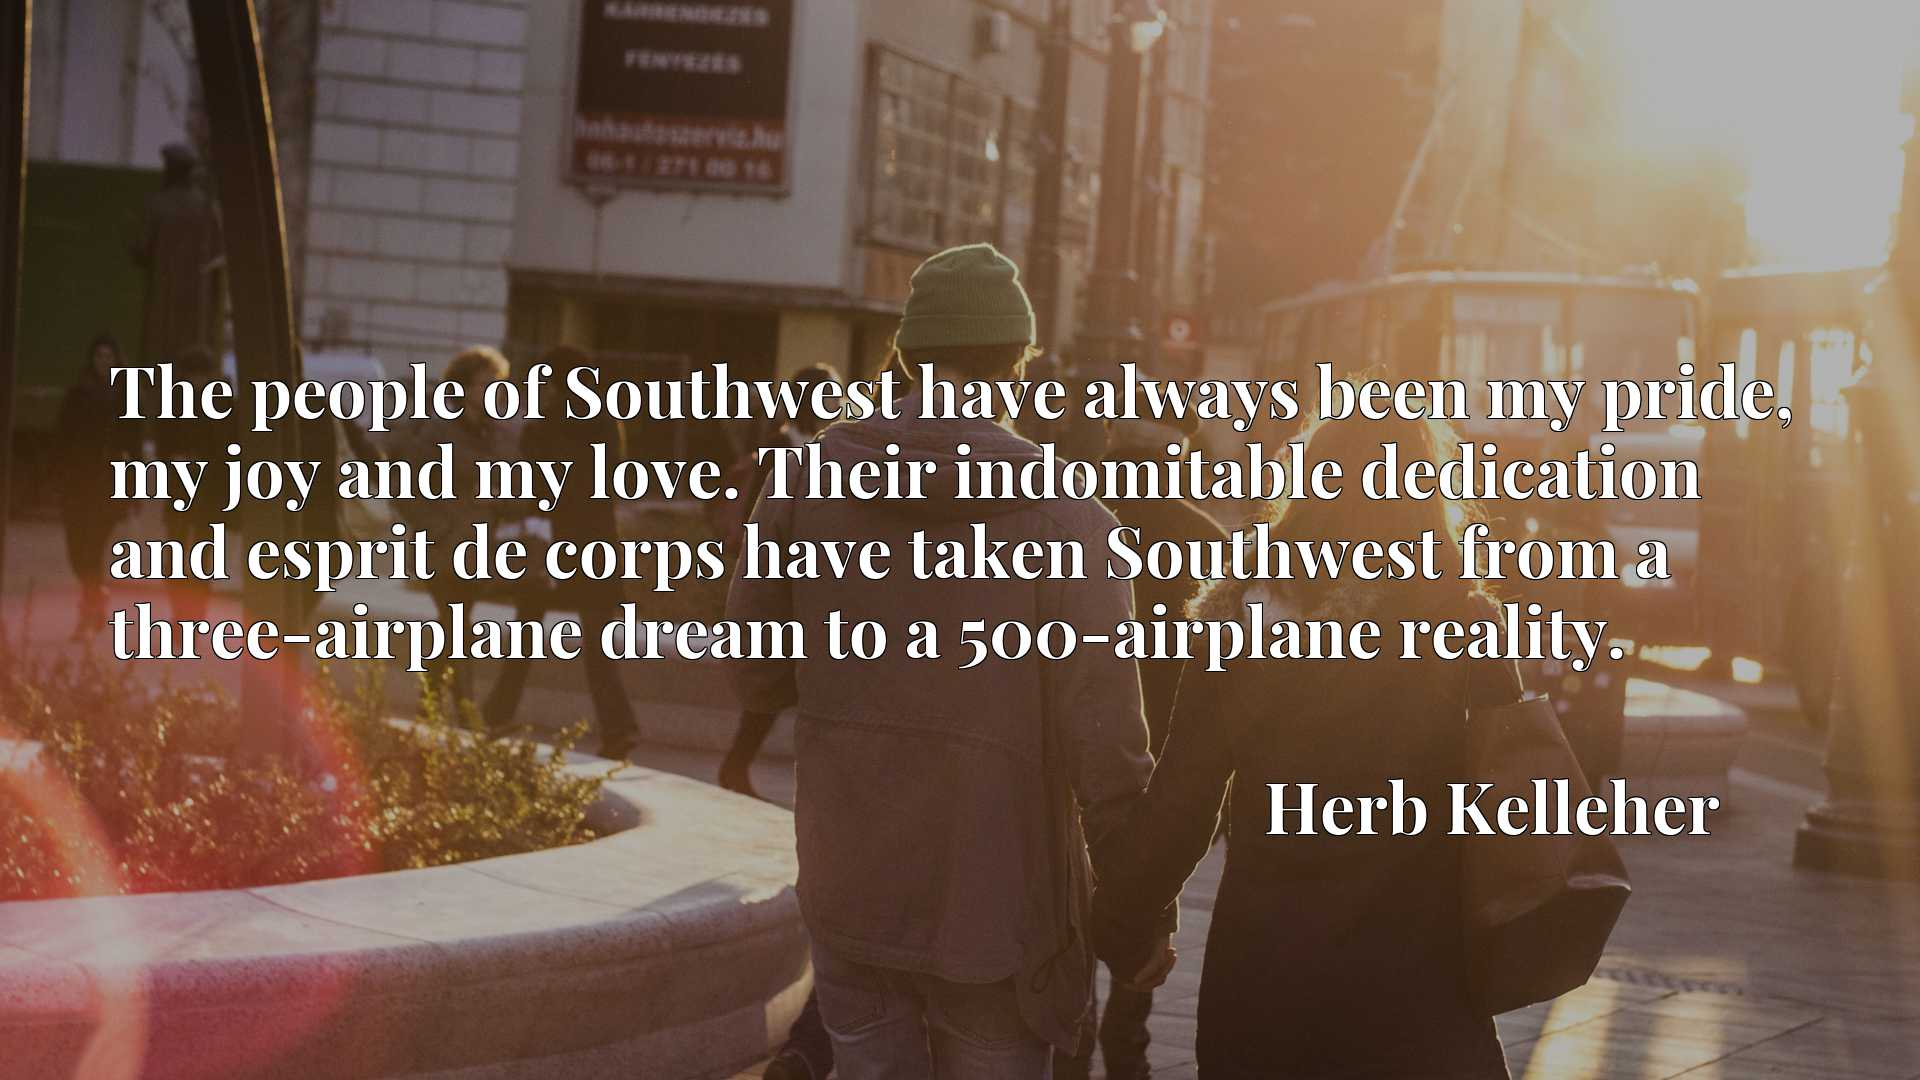 Quote Picture :The people of Southwest have always been my pride, my joy and my love. Their indomitable dedication and esprit de corps have taken Southwest from a three-airplane dream to a 500-airplane reality.